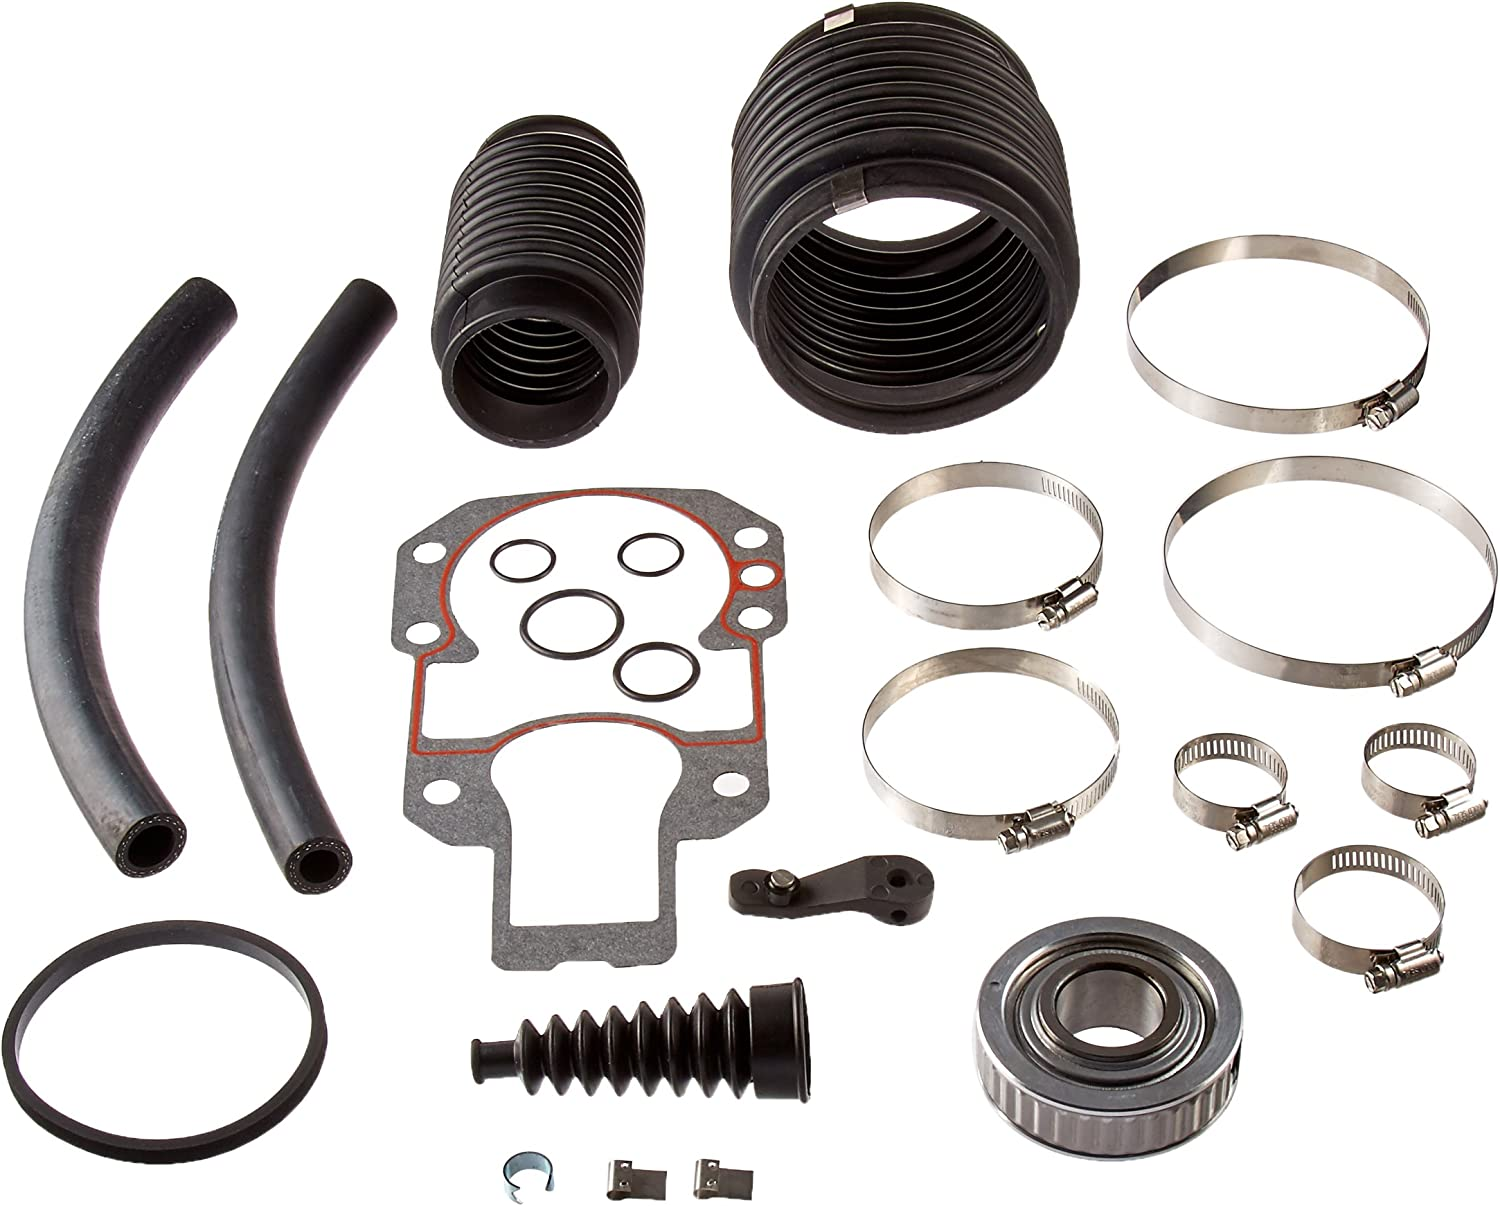 B000C5BA3O Sierra International 18-2601-1 Transom Seal Kit 81yaf2ZIRKL.SL1500_